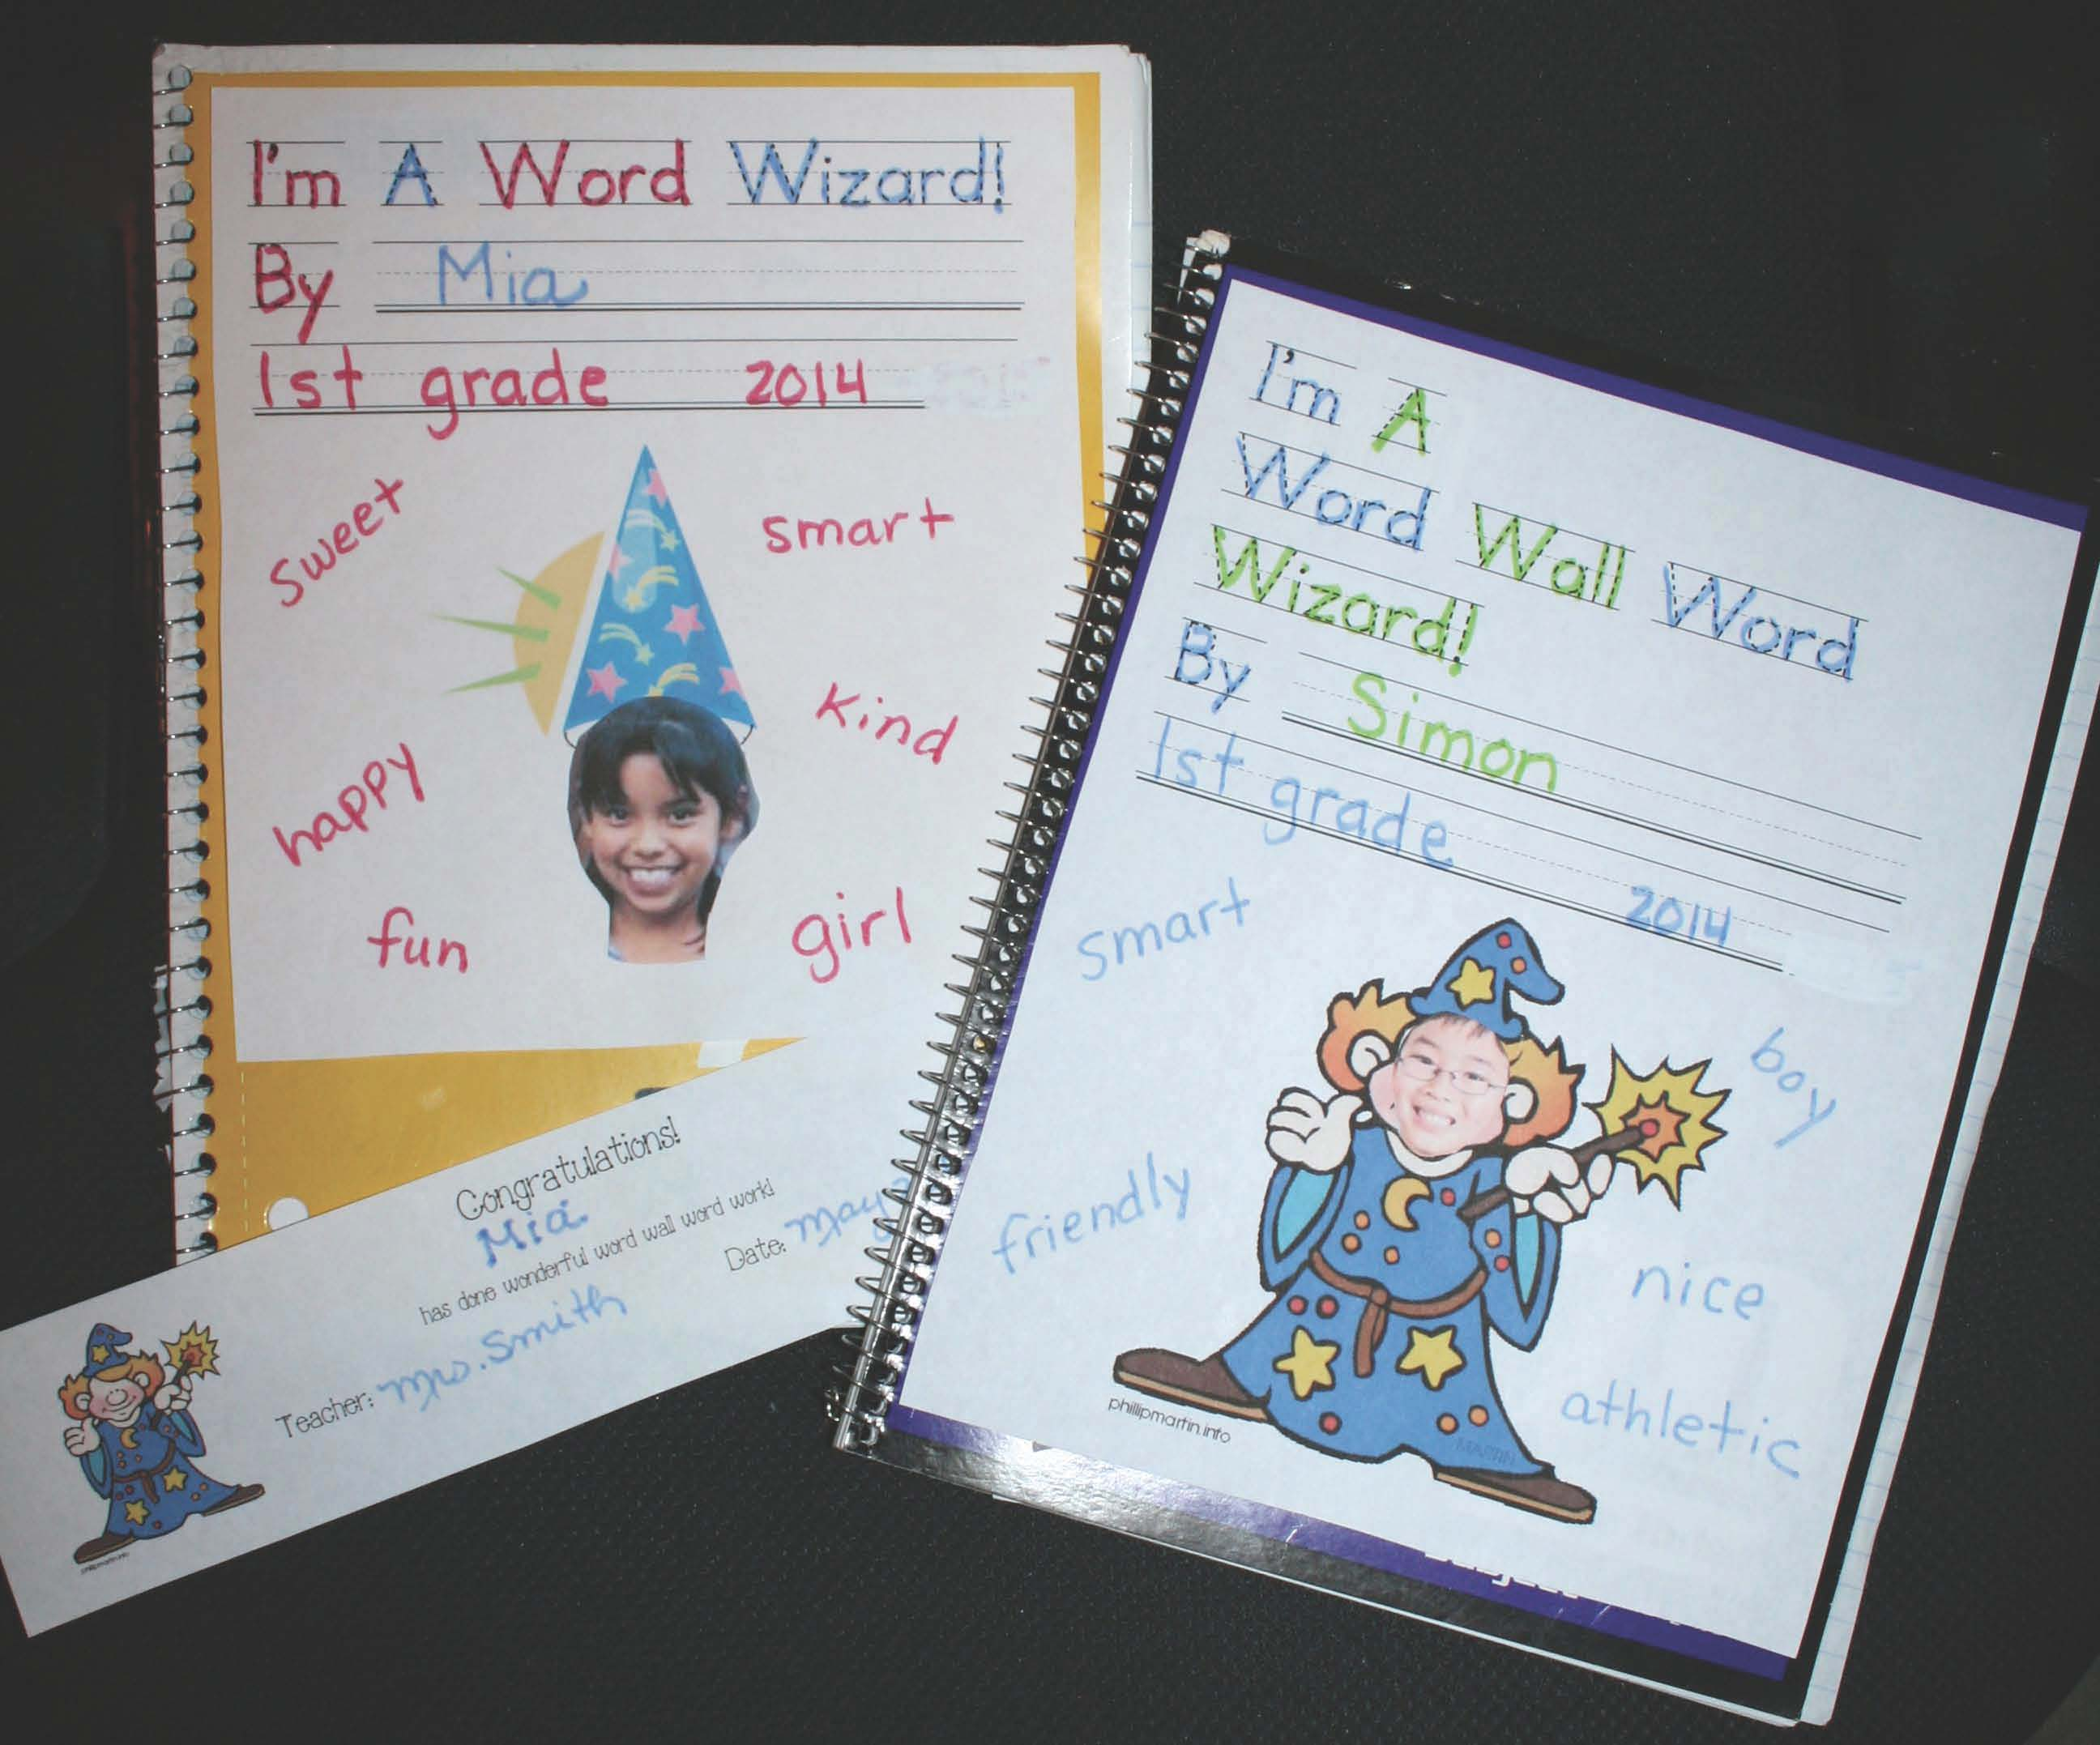 word wizards, writing notebooks, word wall words, word wall activities, dolch words, cvc words, daily 5 word work, daily 5 activities, vocabulary building activities, writing centers, ccss for kindergarten, ccss for 1st, common core vocabulary, common core word wall words, free common core for 1st, free common core lessons for kindergarten